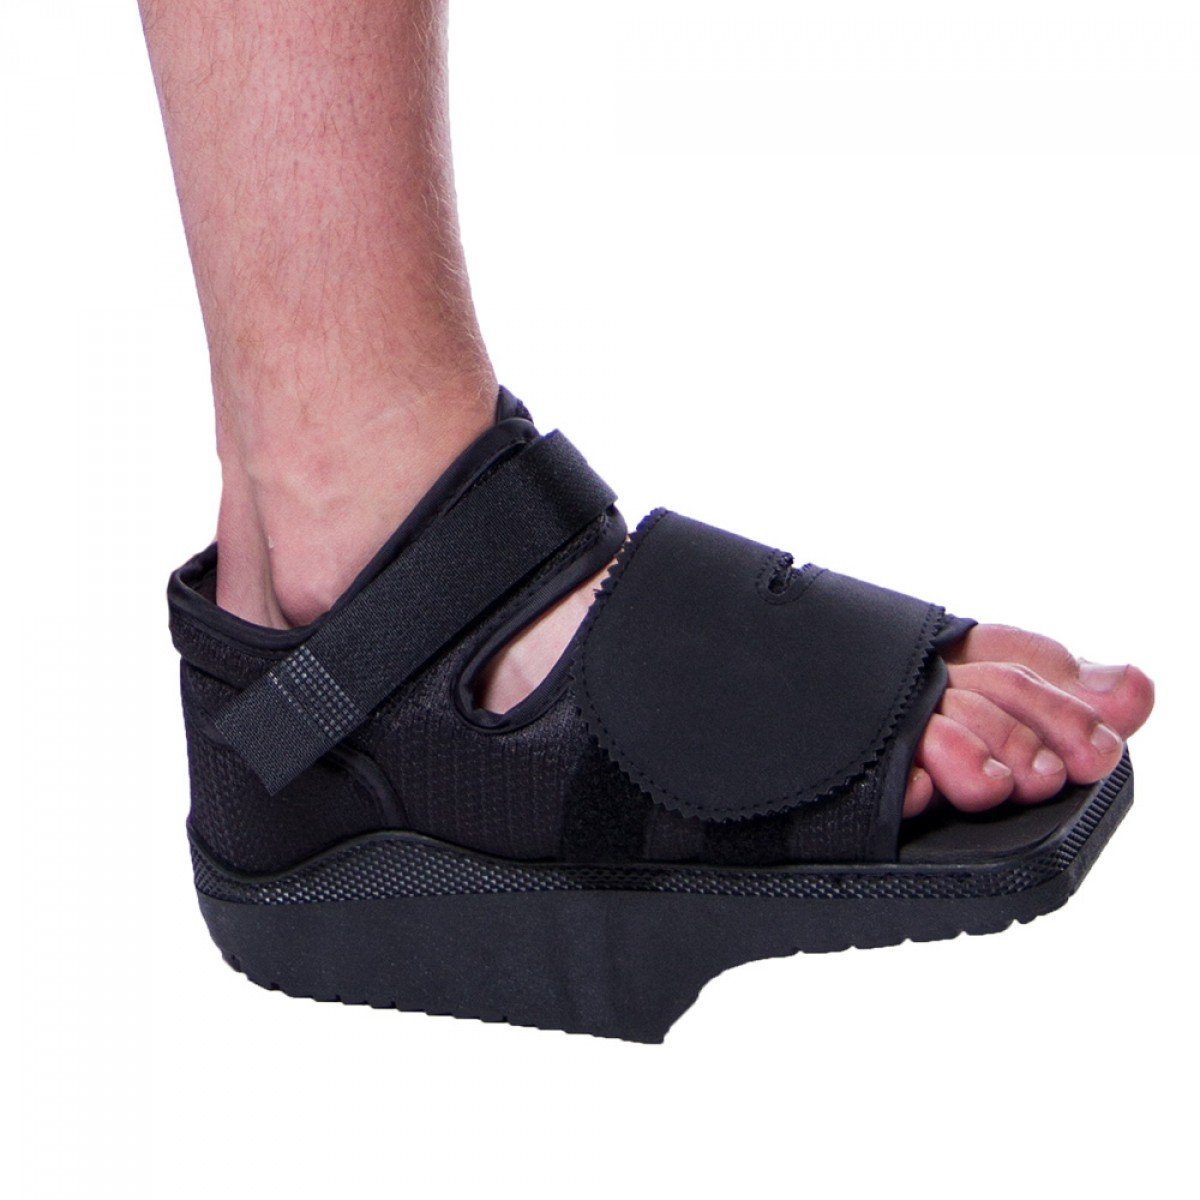 Orthowedge Forefoot Off-Loading Healing Shoe-XL by BraceAbility